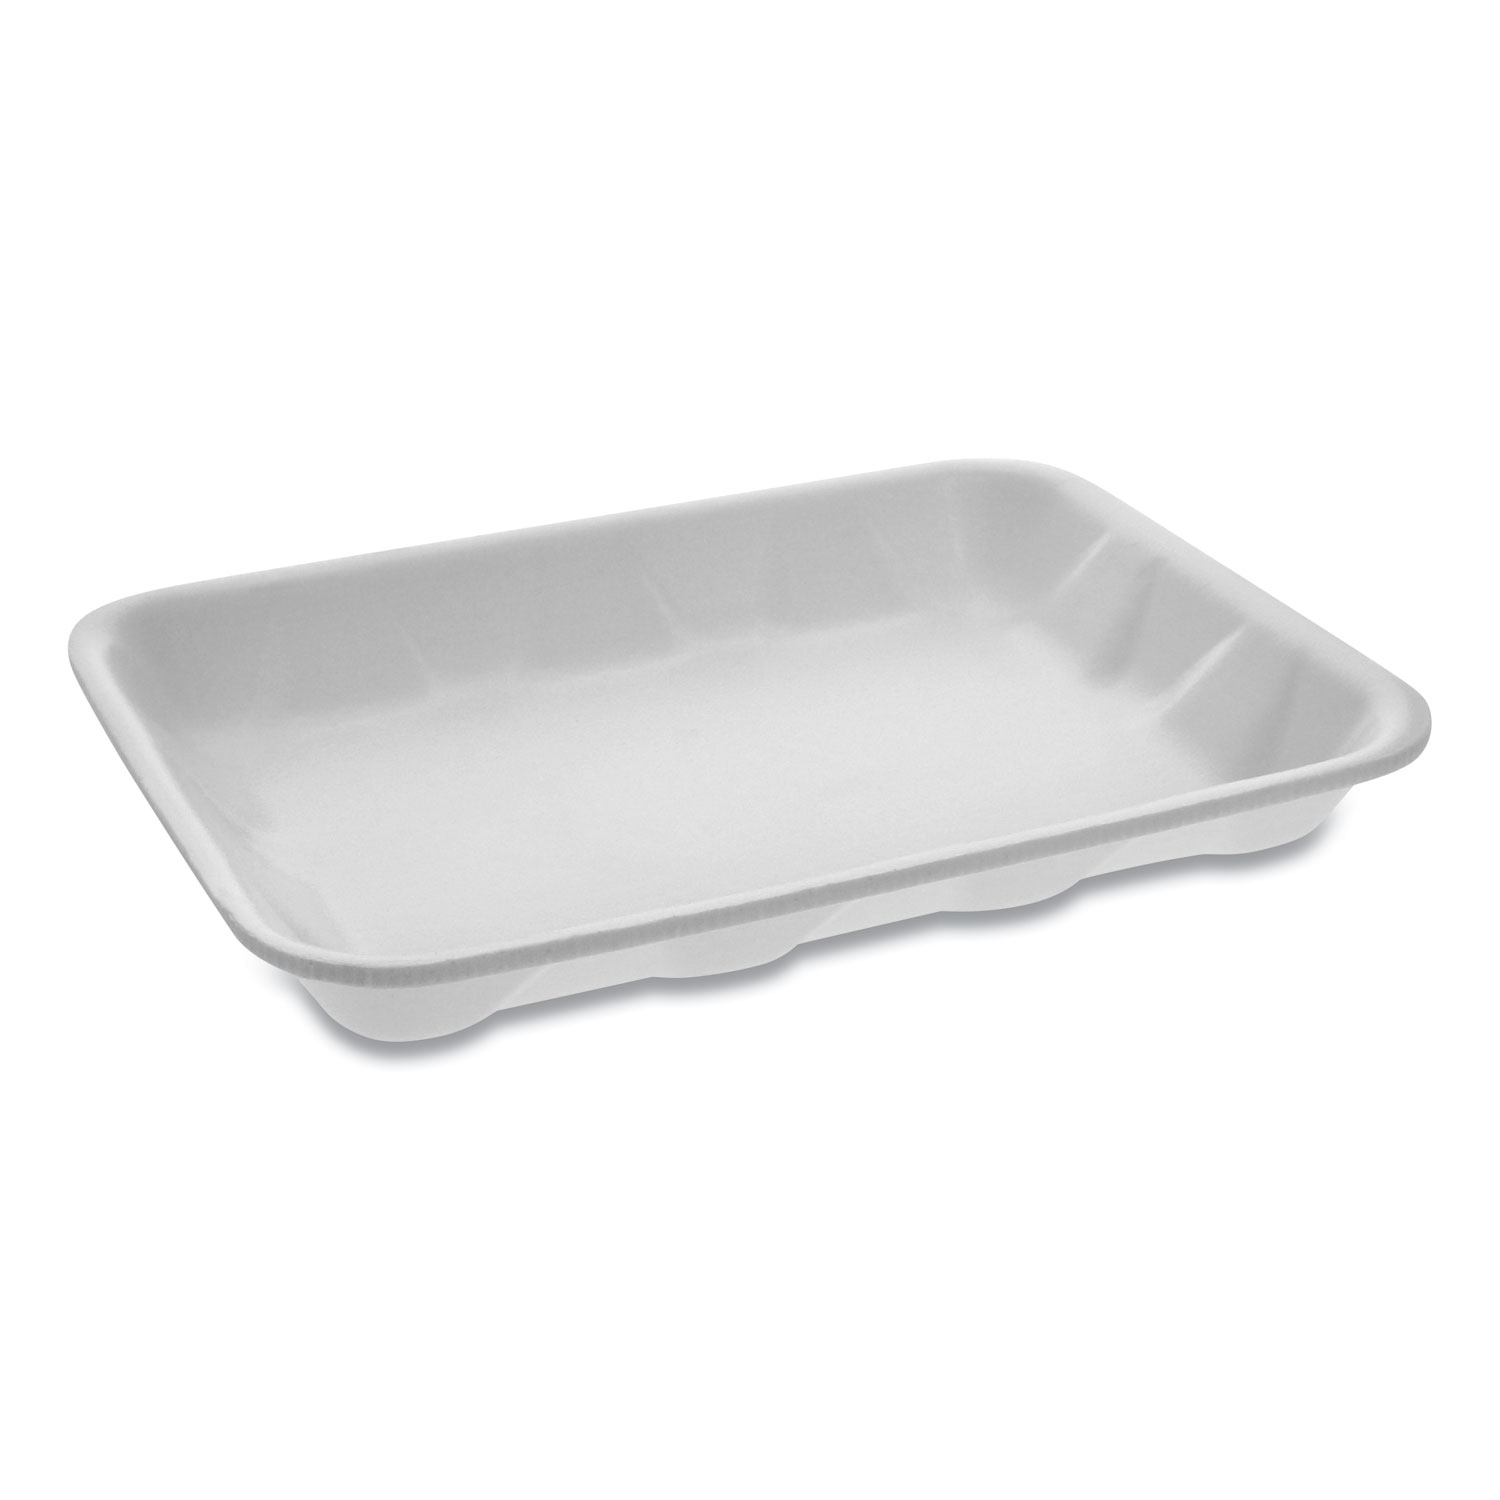 Pactiv Meat Tray, #4 Deep, 9.5 x 7 x 1.25, White, 500/Carton